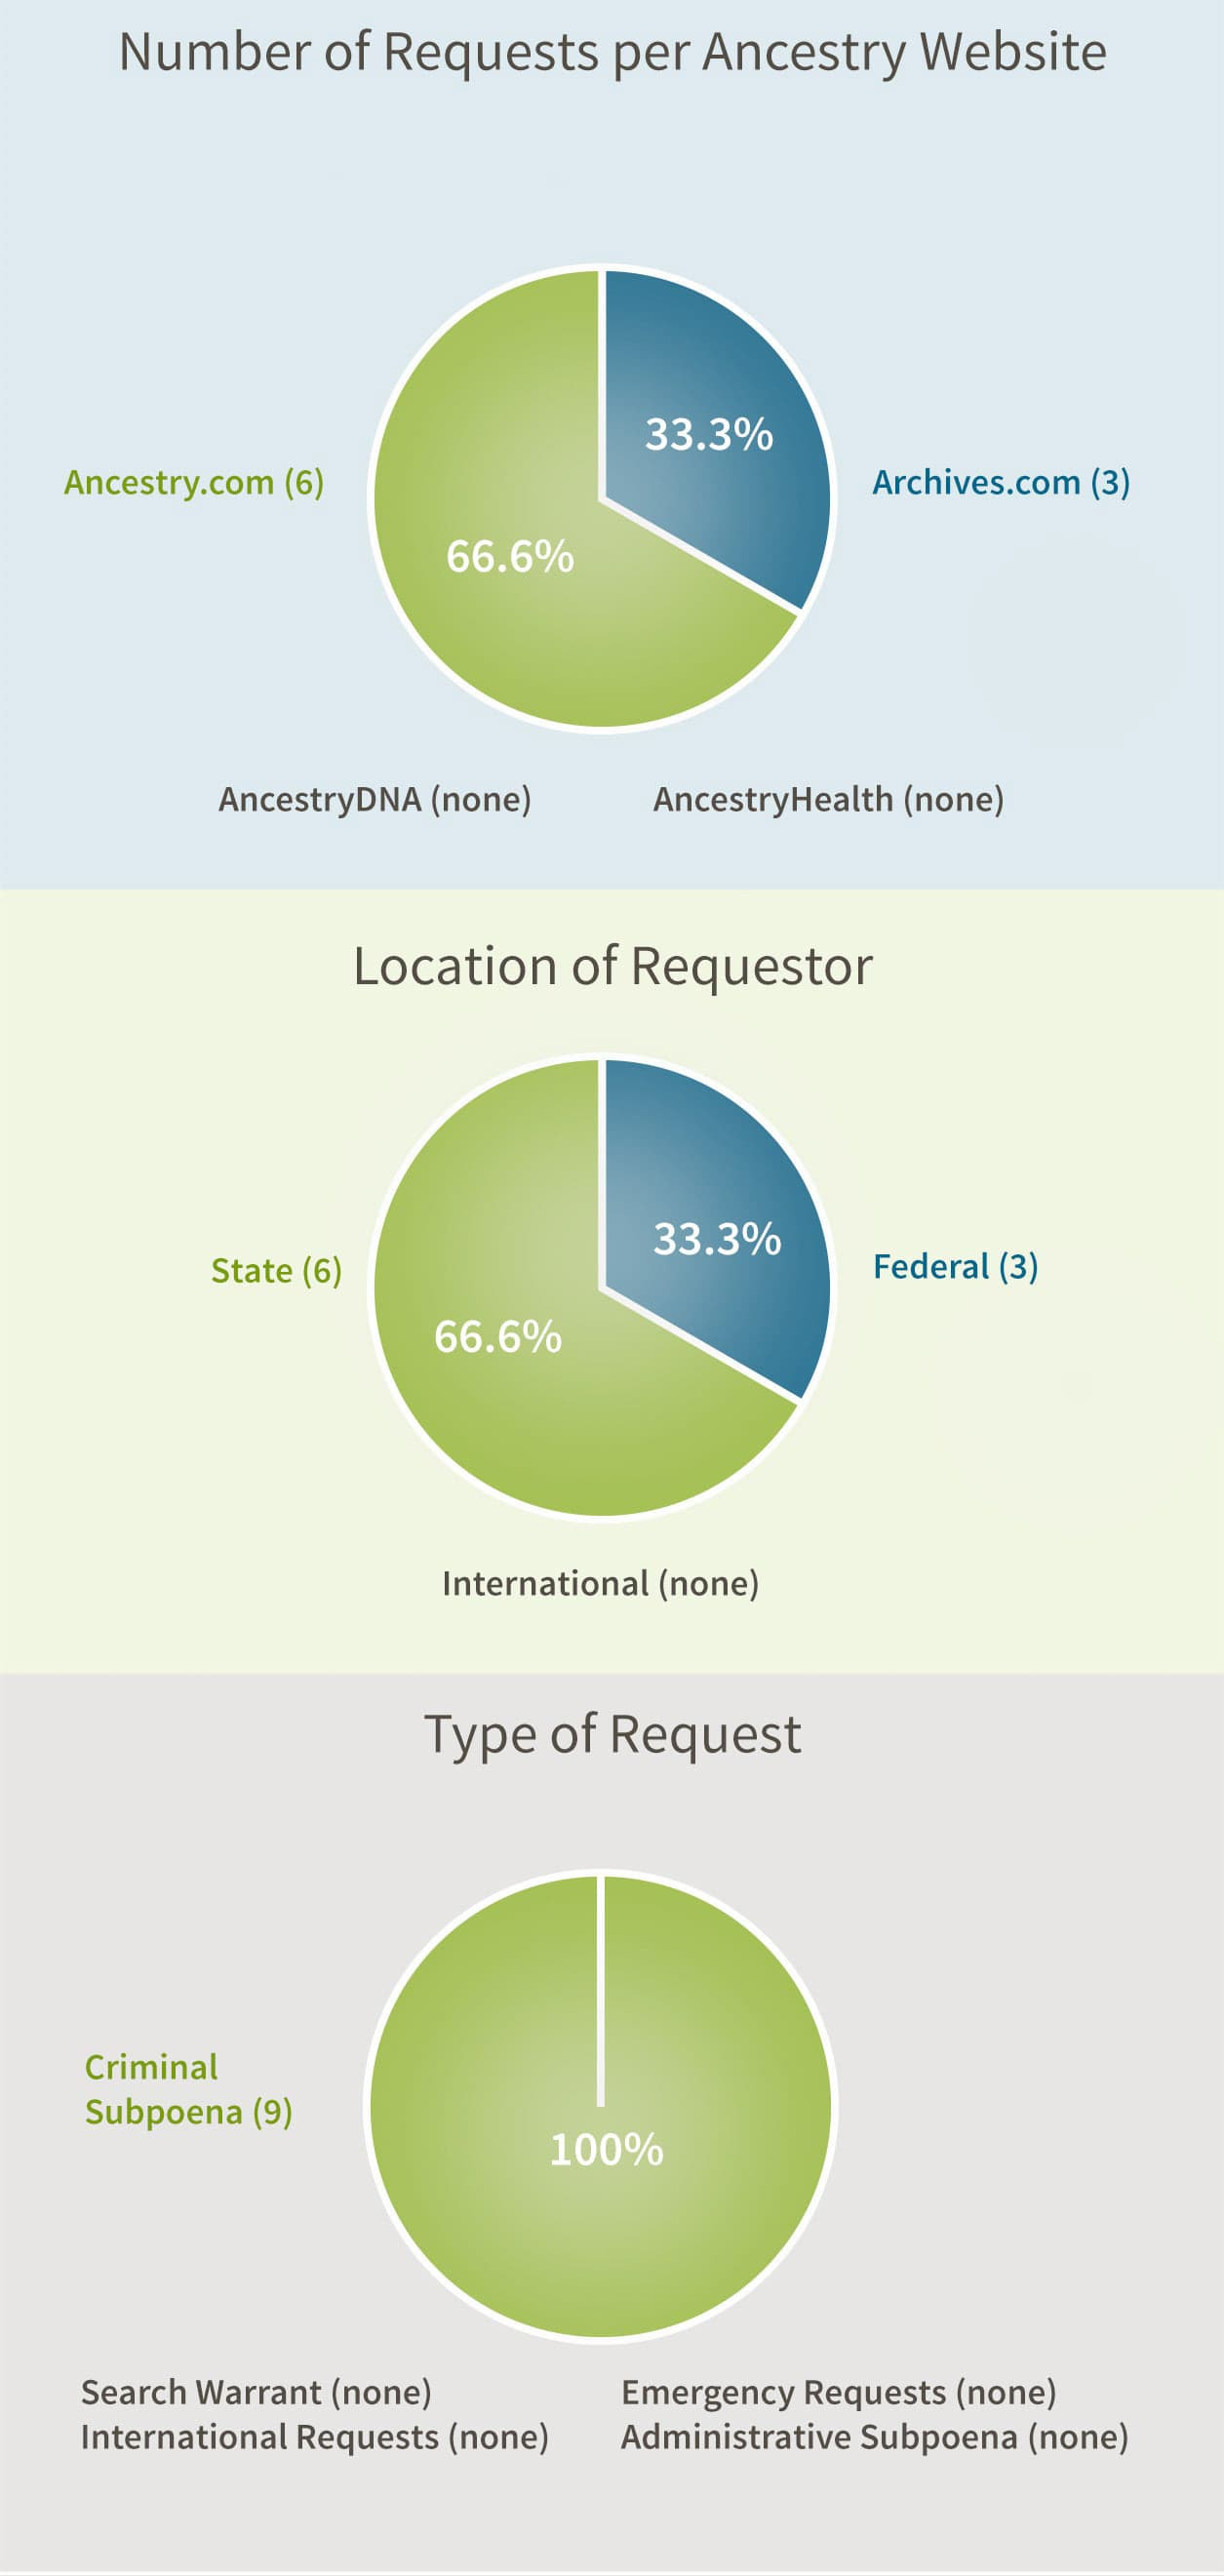 Number of Requests per Ancestry Website: Ancestry.com & Archives.com (0), Archives.com (3), Ancestry.com          (6), AncestryDNA (none), AncestryHealth (none). Location of Requestor:Federal (3), State (6), International (none). Type of Request: Administrative Subpoena (0), Criminal Subpoena (9)Search Warrant (none), International Requests (none),       Emergency Requests (none)